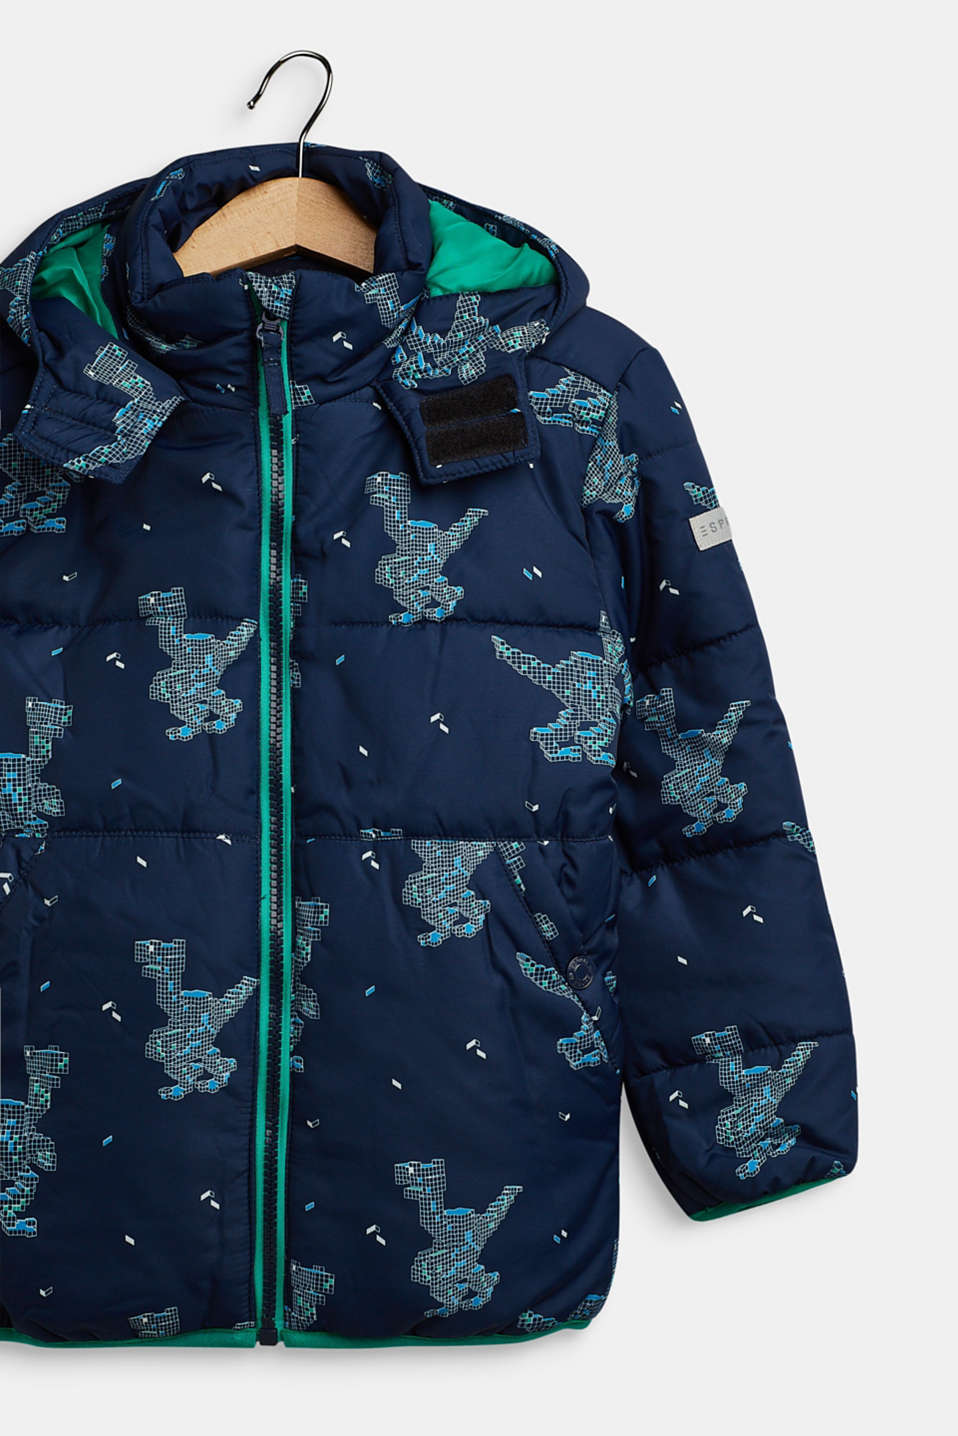 Quilted jacket with a dinosaur print, NAVY, detail image number 2